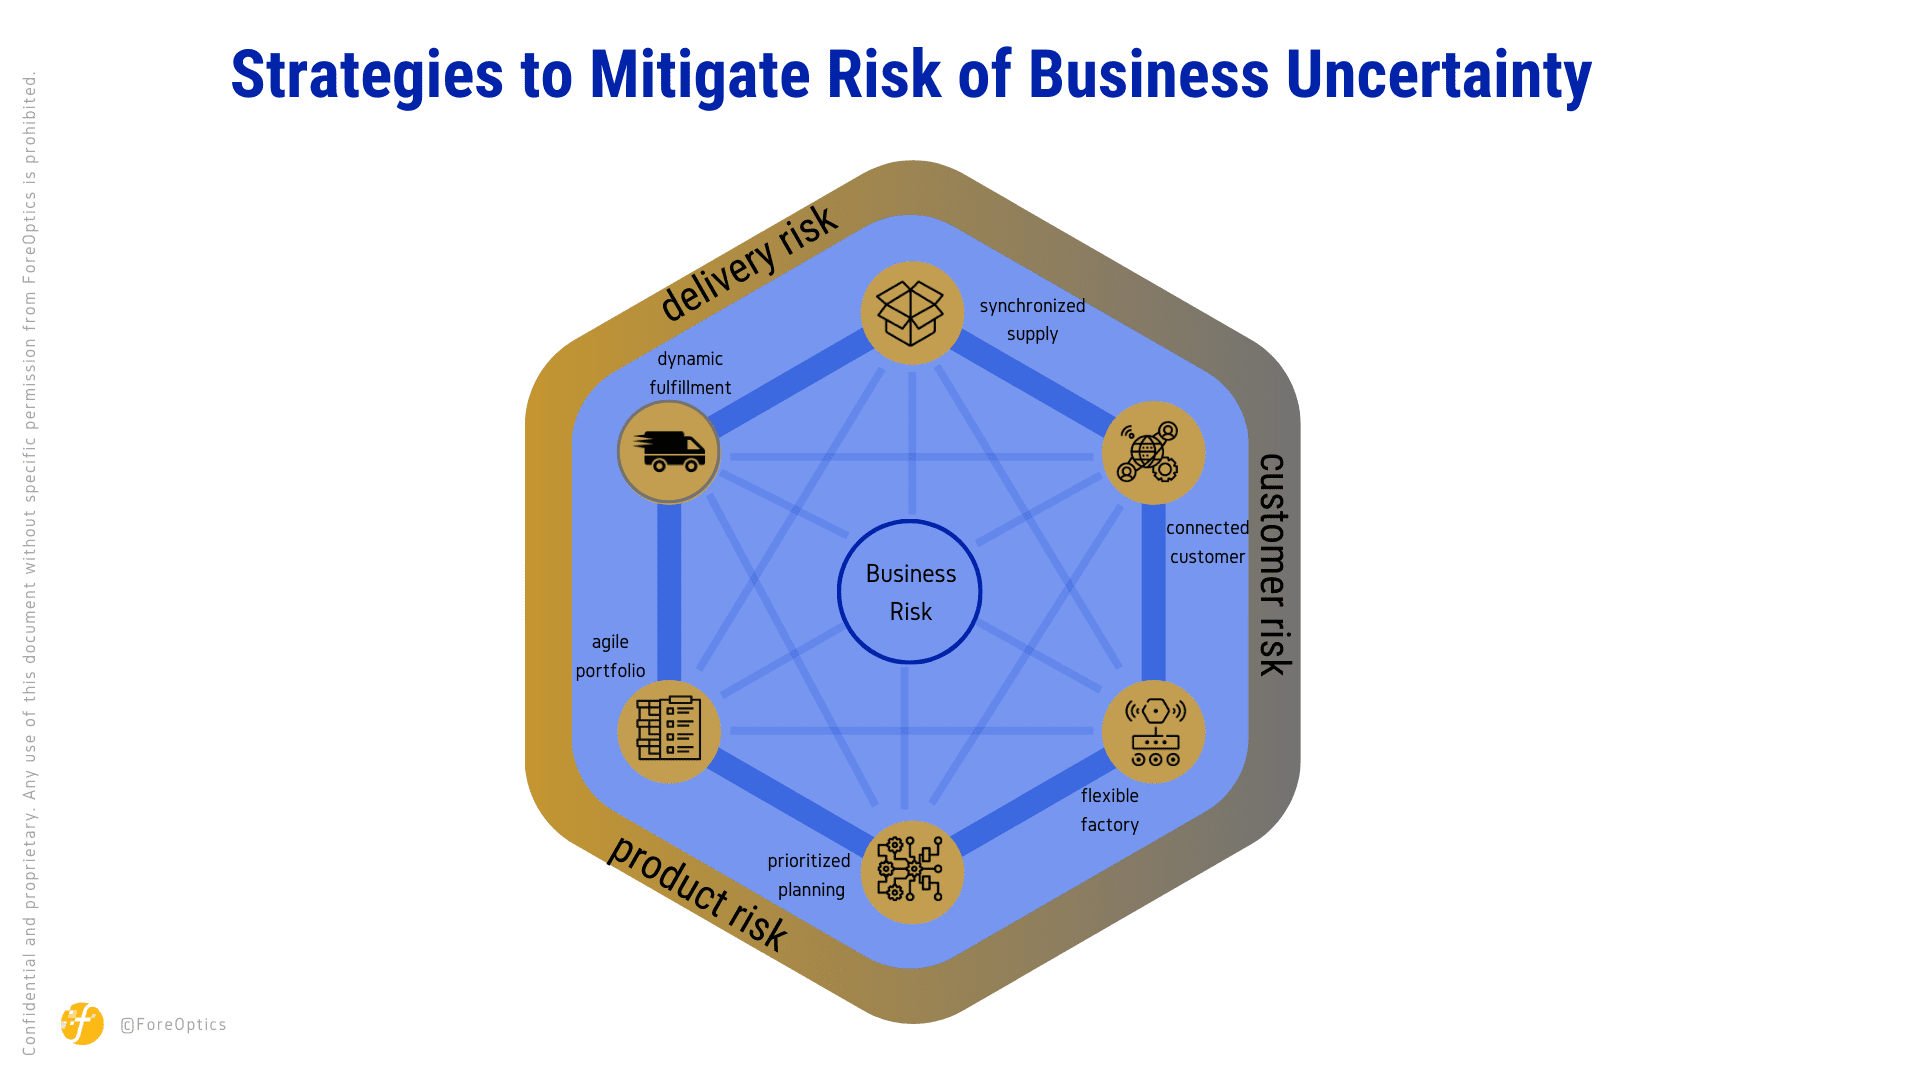 strategies to mitigate risk of business uncertainty - delivery risk, customer risk, product risk. synchronized supply, connected customer, flexible factory, prioritized planning, agile portfolio, dynamic fulfillment. an in depth view of identifying business risks and strategies to mitigate business risk.